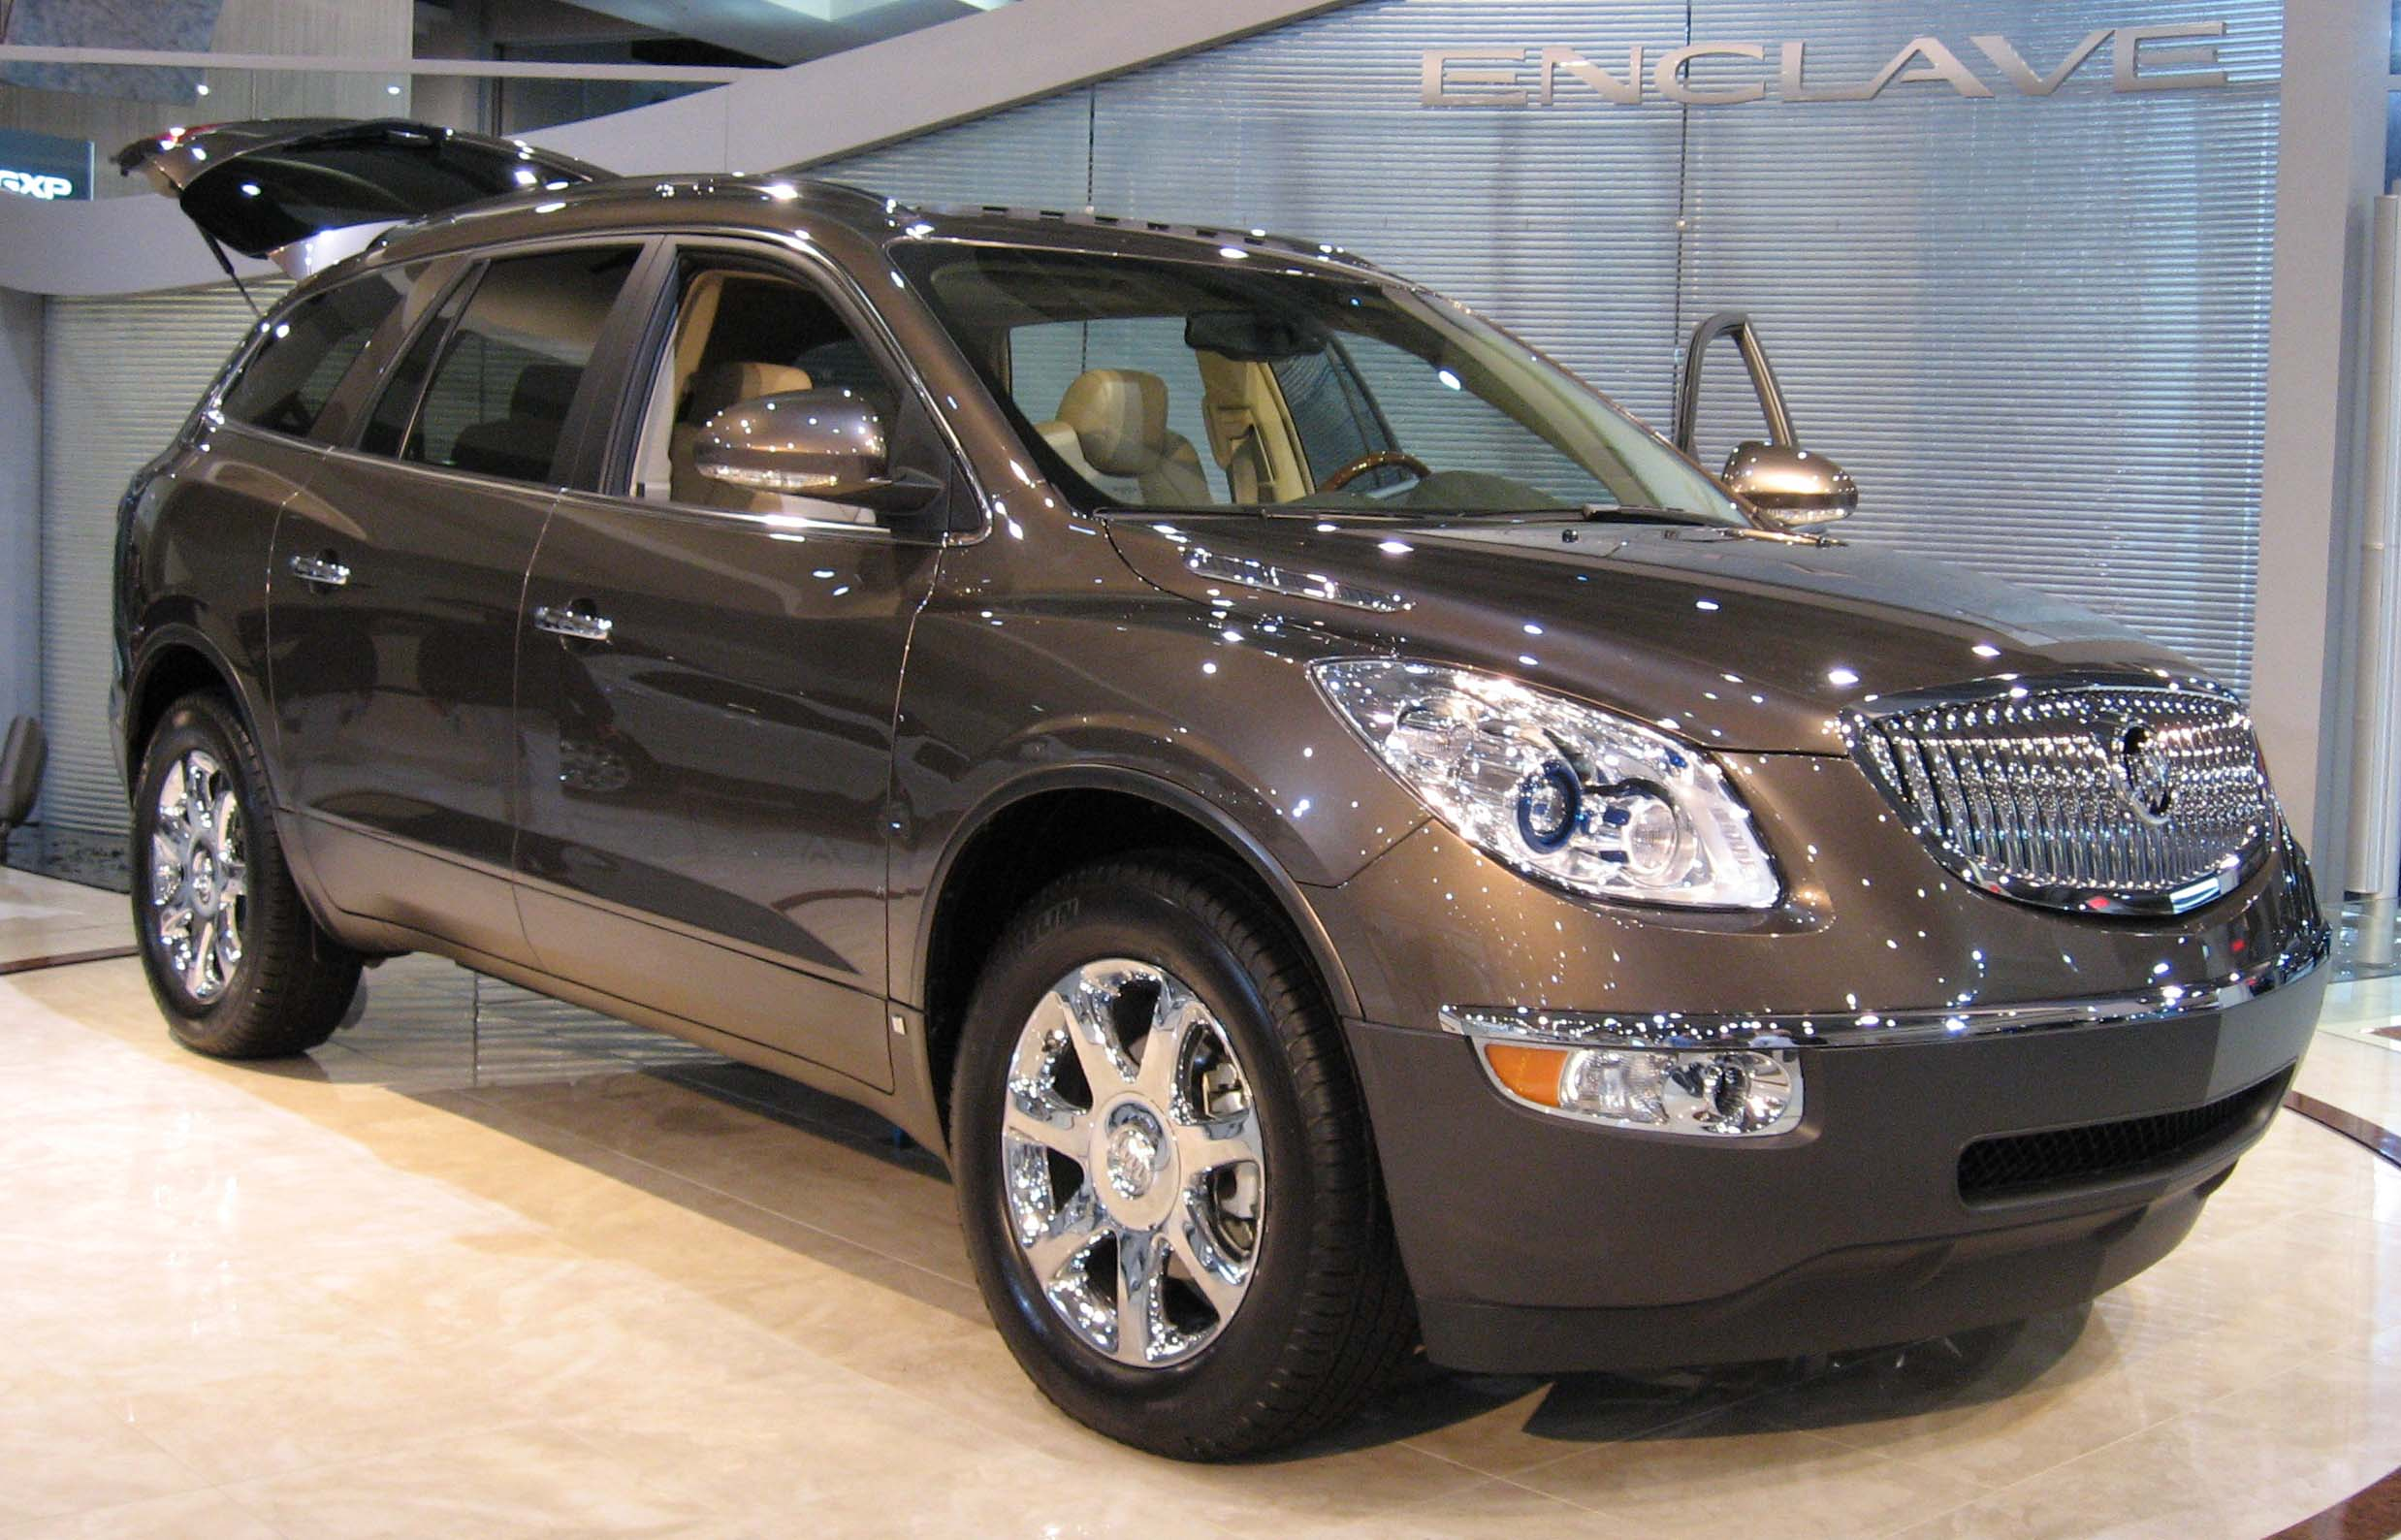 Best 7-Passenger SUVs For 2012